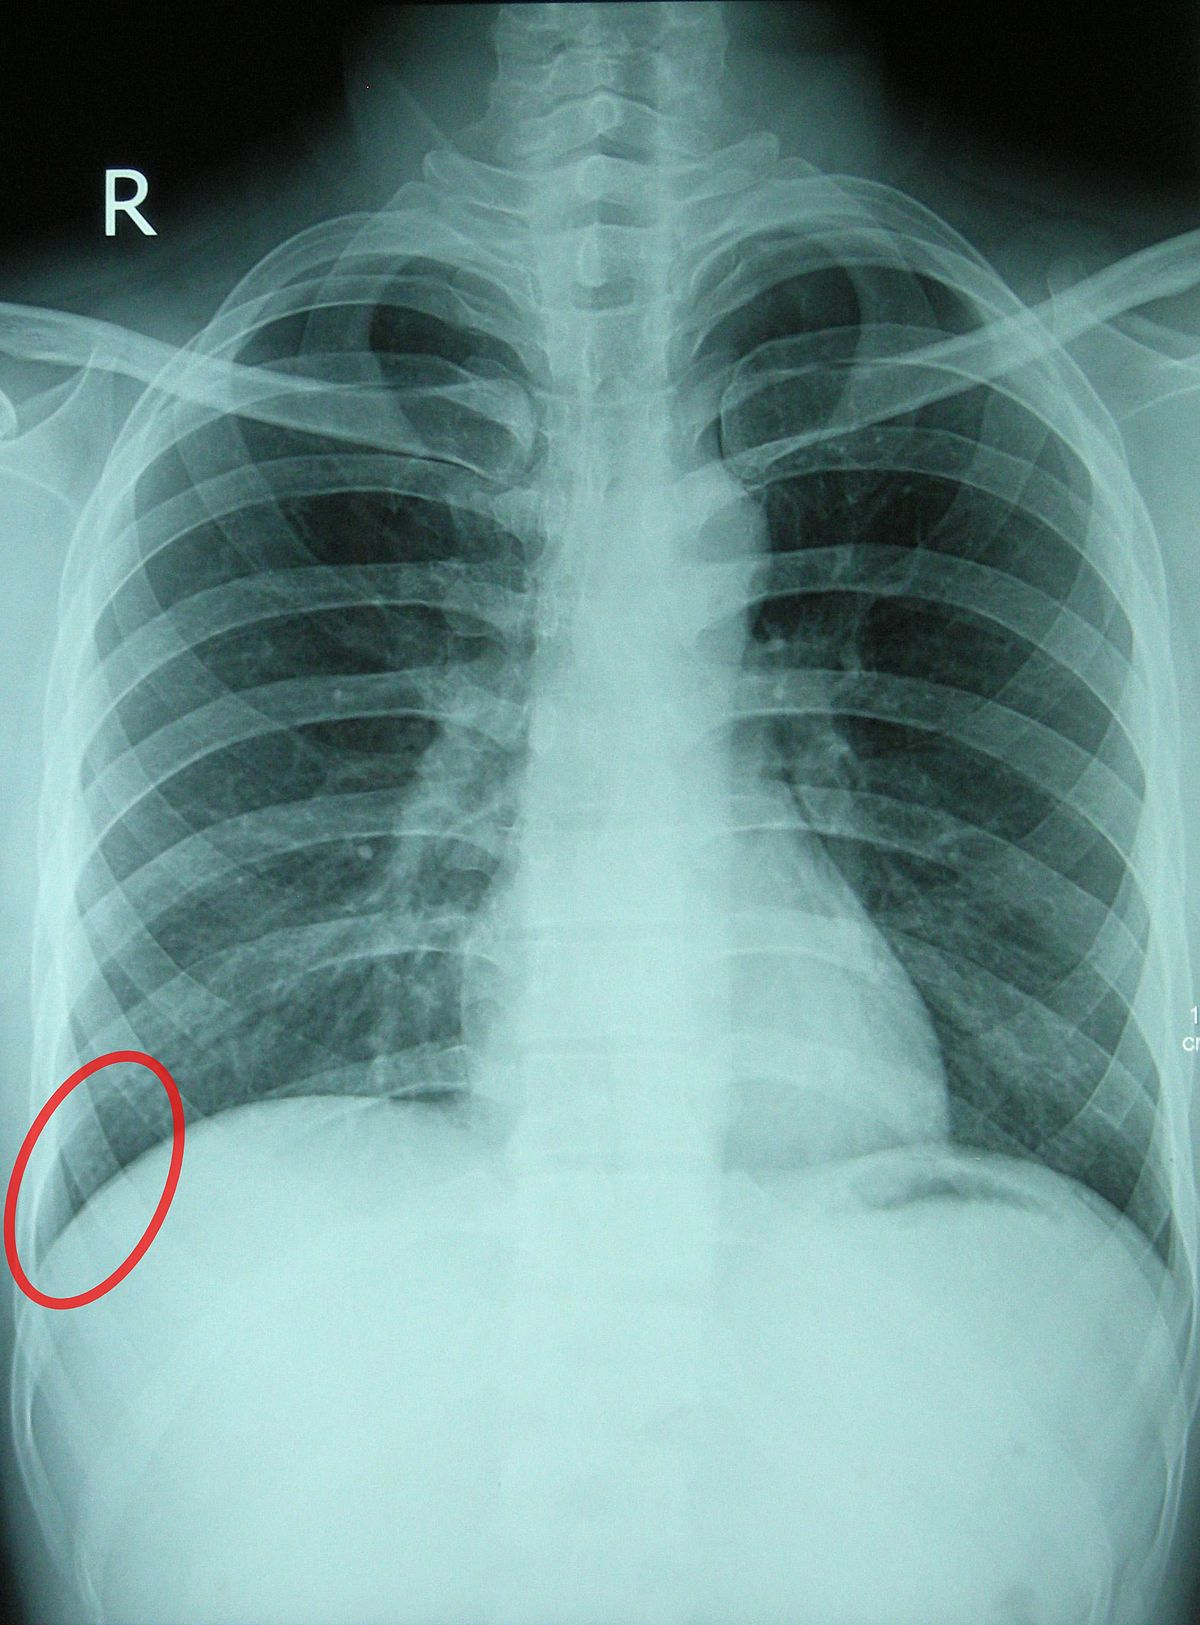 Why do we need an X-ray diffractogram of the lungs, how does it differ from fluorography